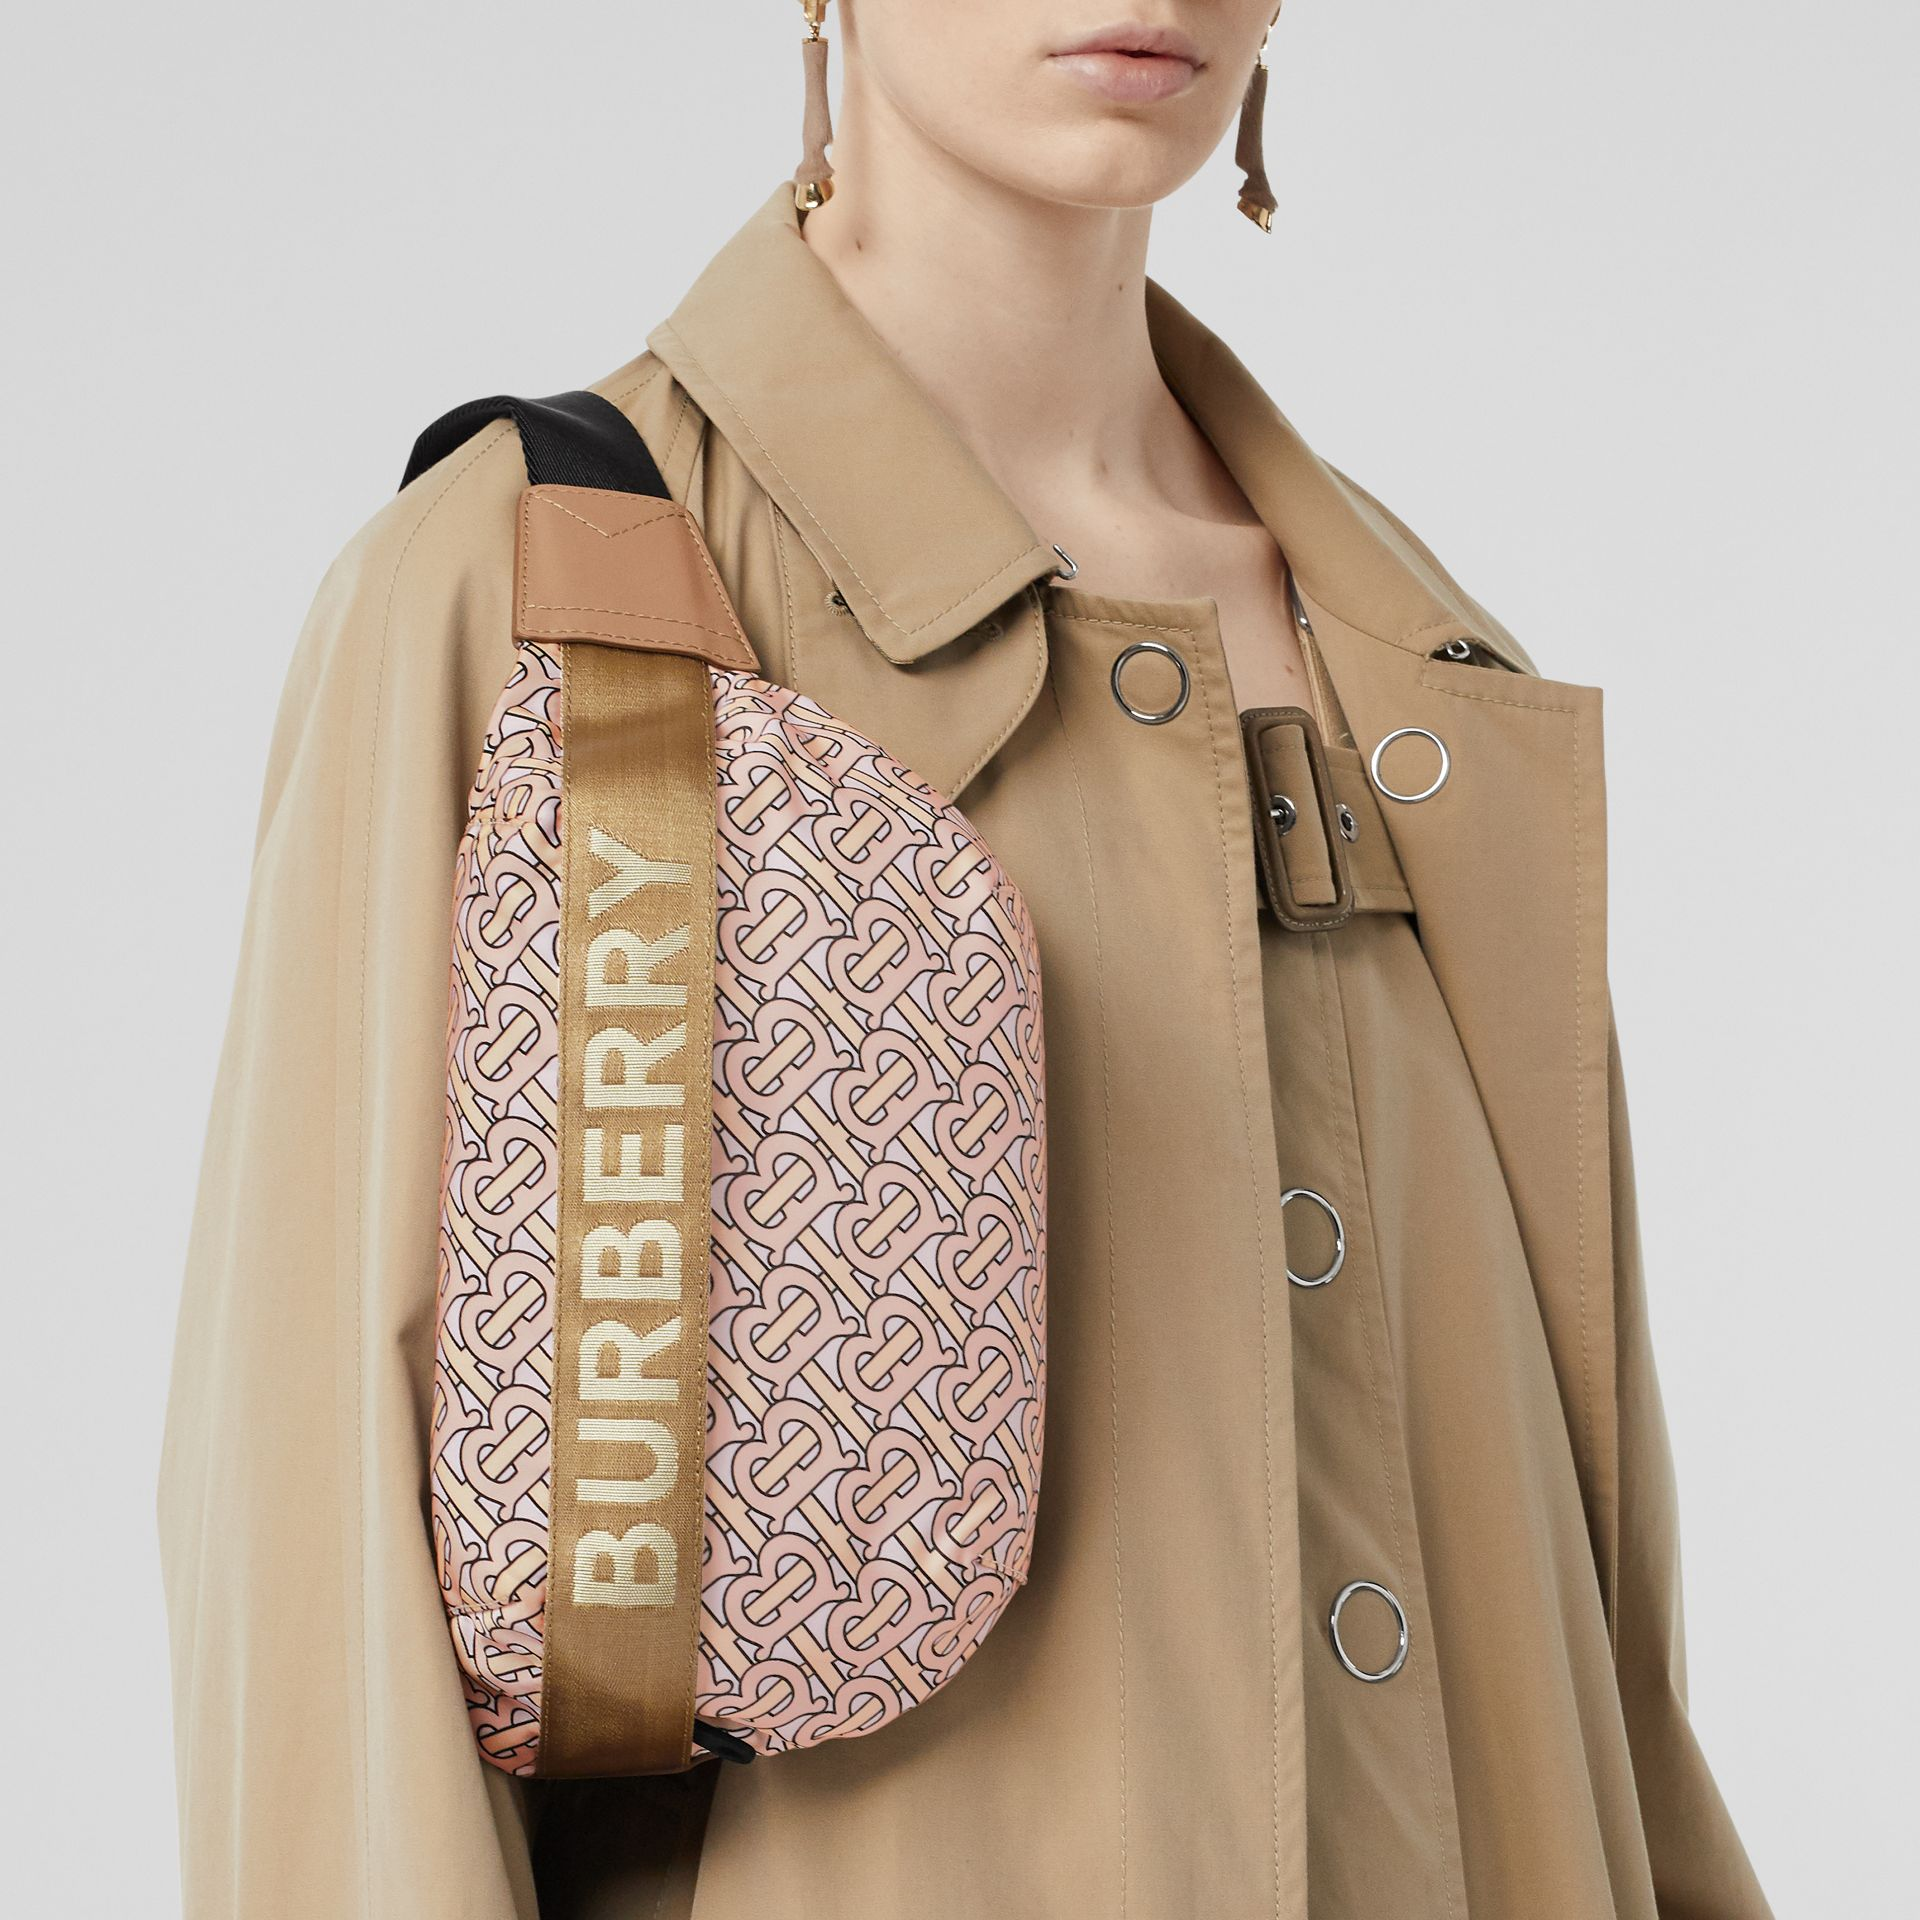 Medium Monogram Print Bum Bag in Blush | Burberry - gallery image 6